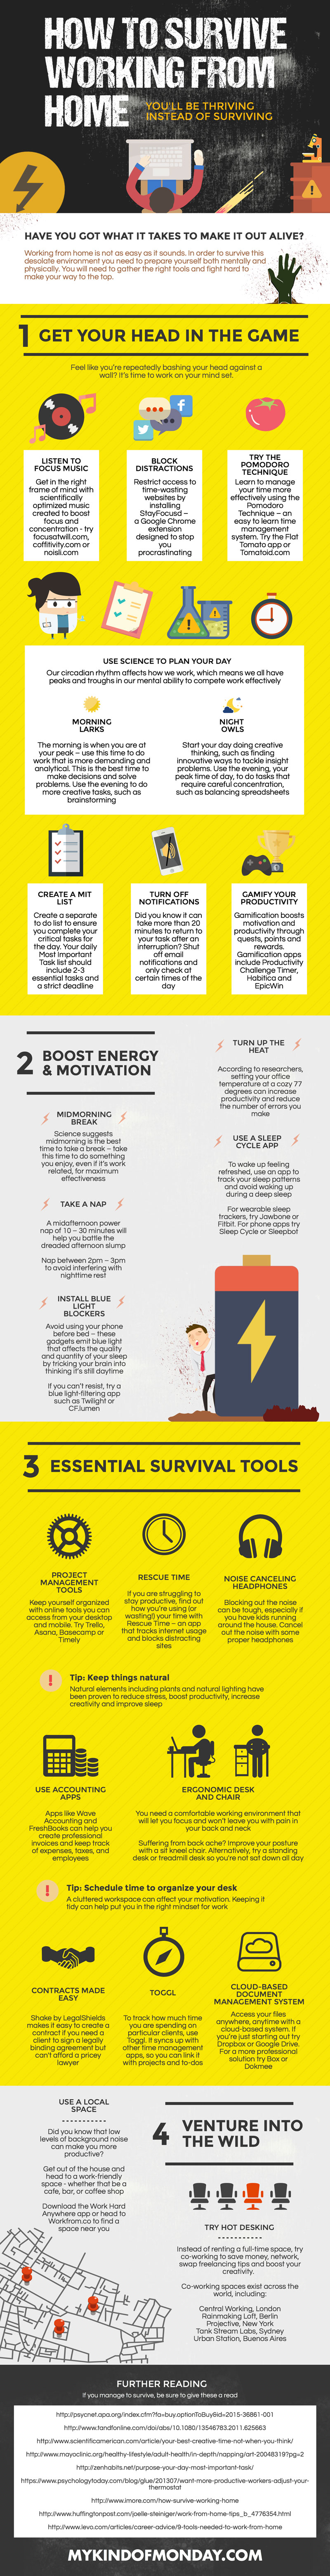 infographic-survive-working-from-home